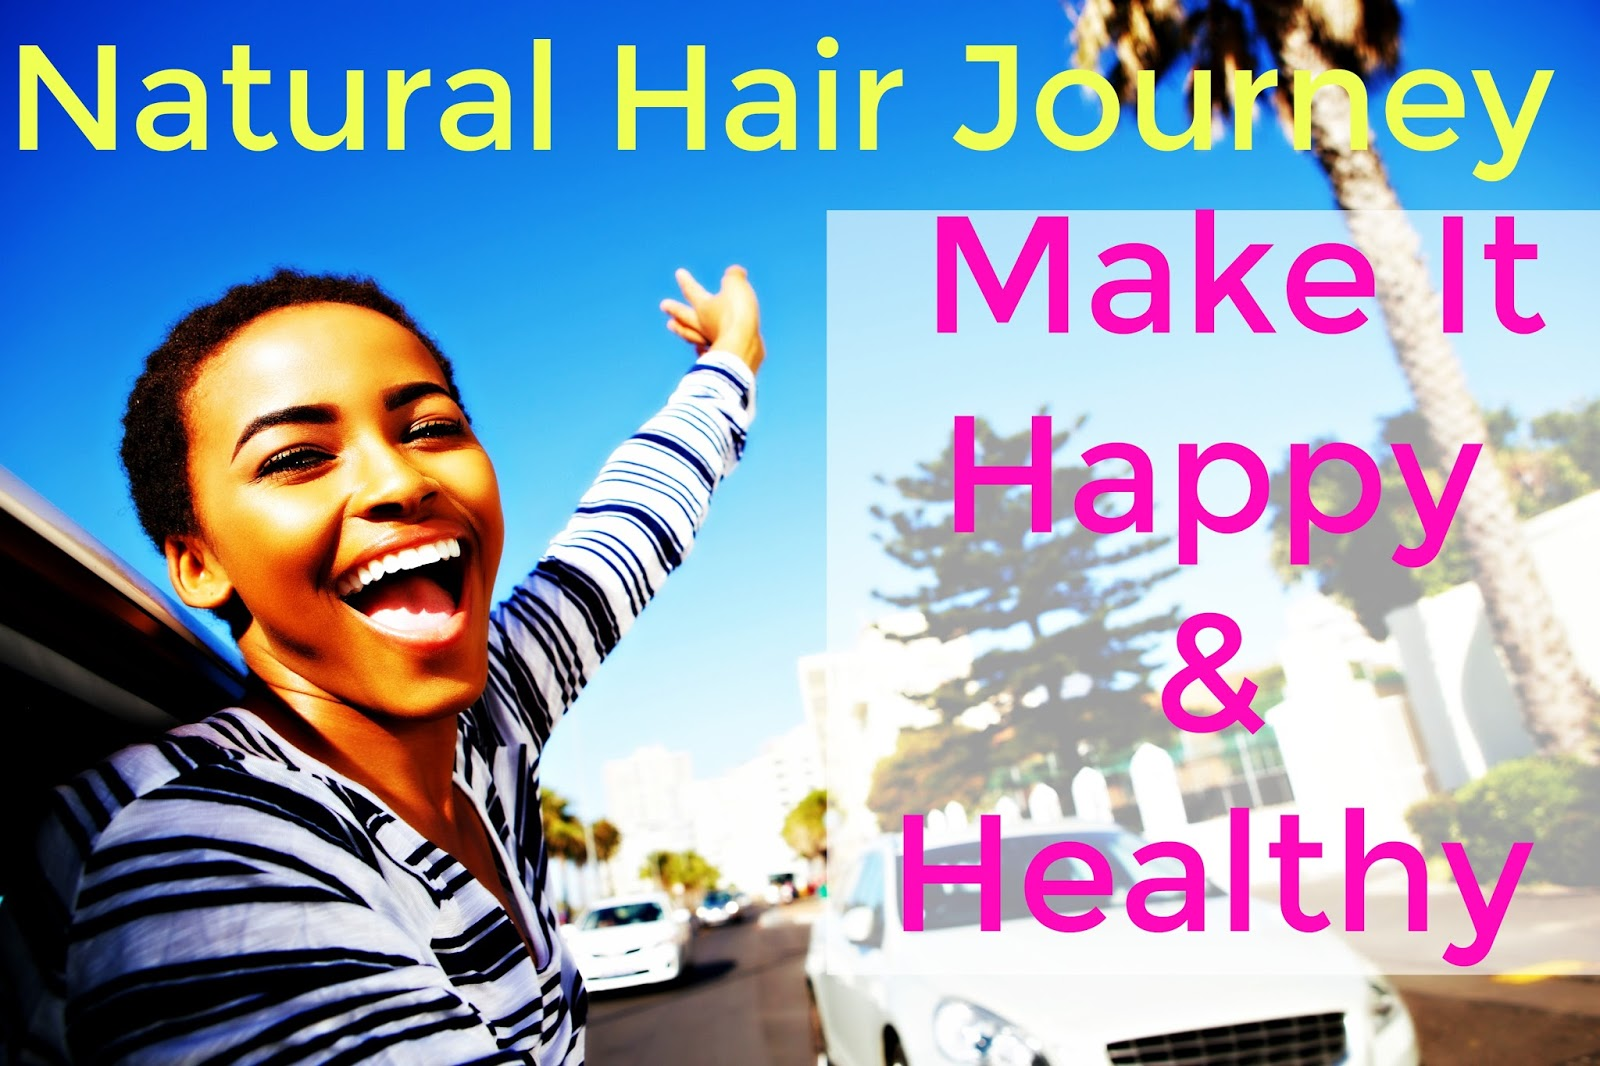 Here's how to get start a healthy natural hair journey!